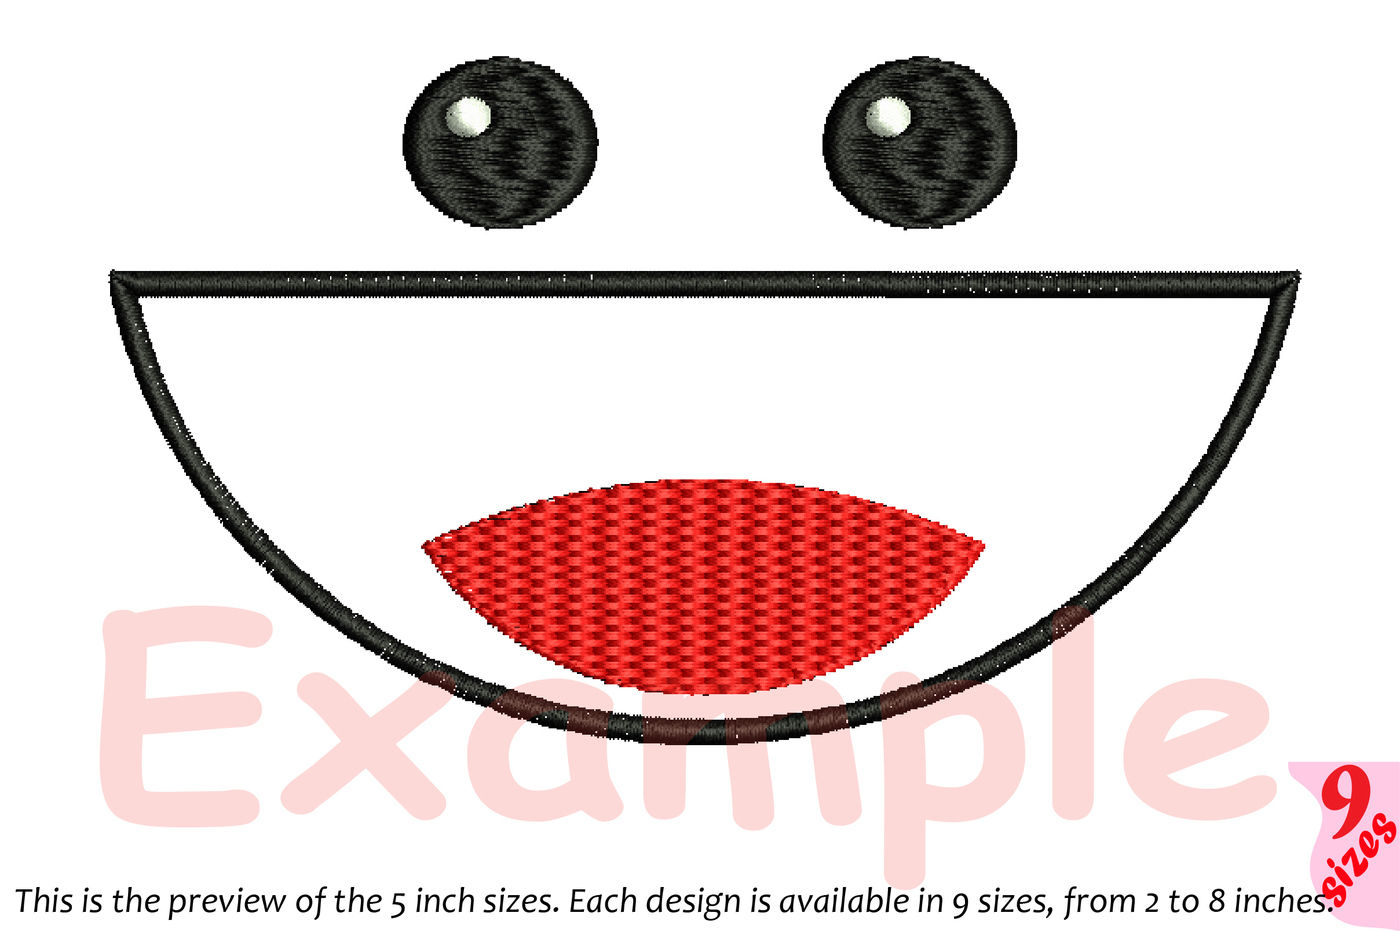 Cute Emoji Embroidery Design Emoticons Smile Kawaii Expression